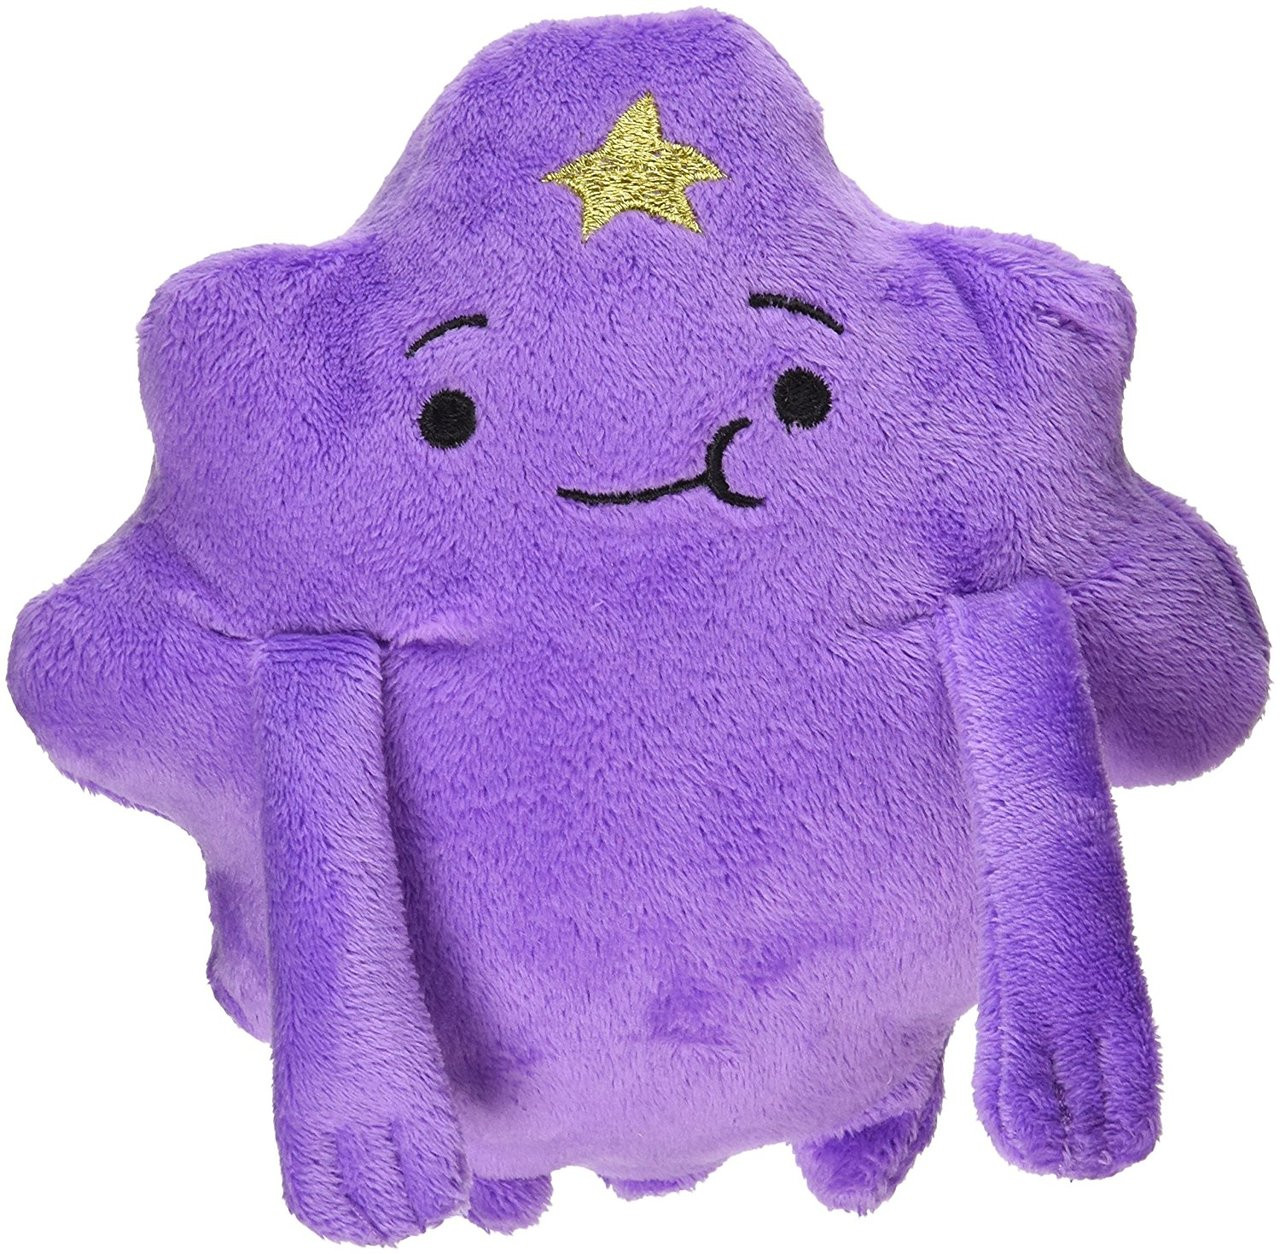 Adventure Time - Lumpy Space Princess - Small 6 Inch - Plush Toys